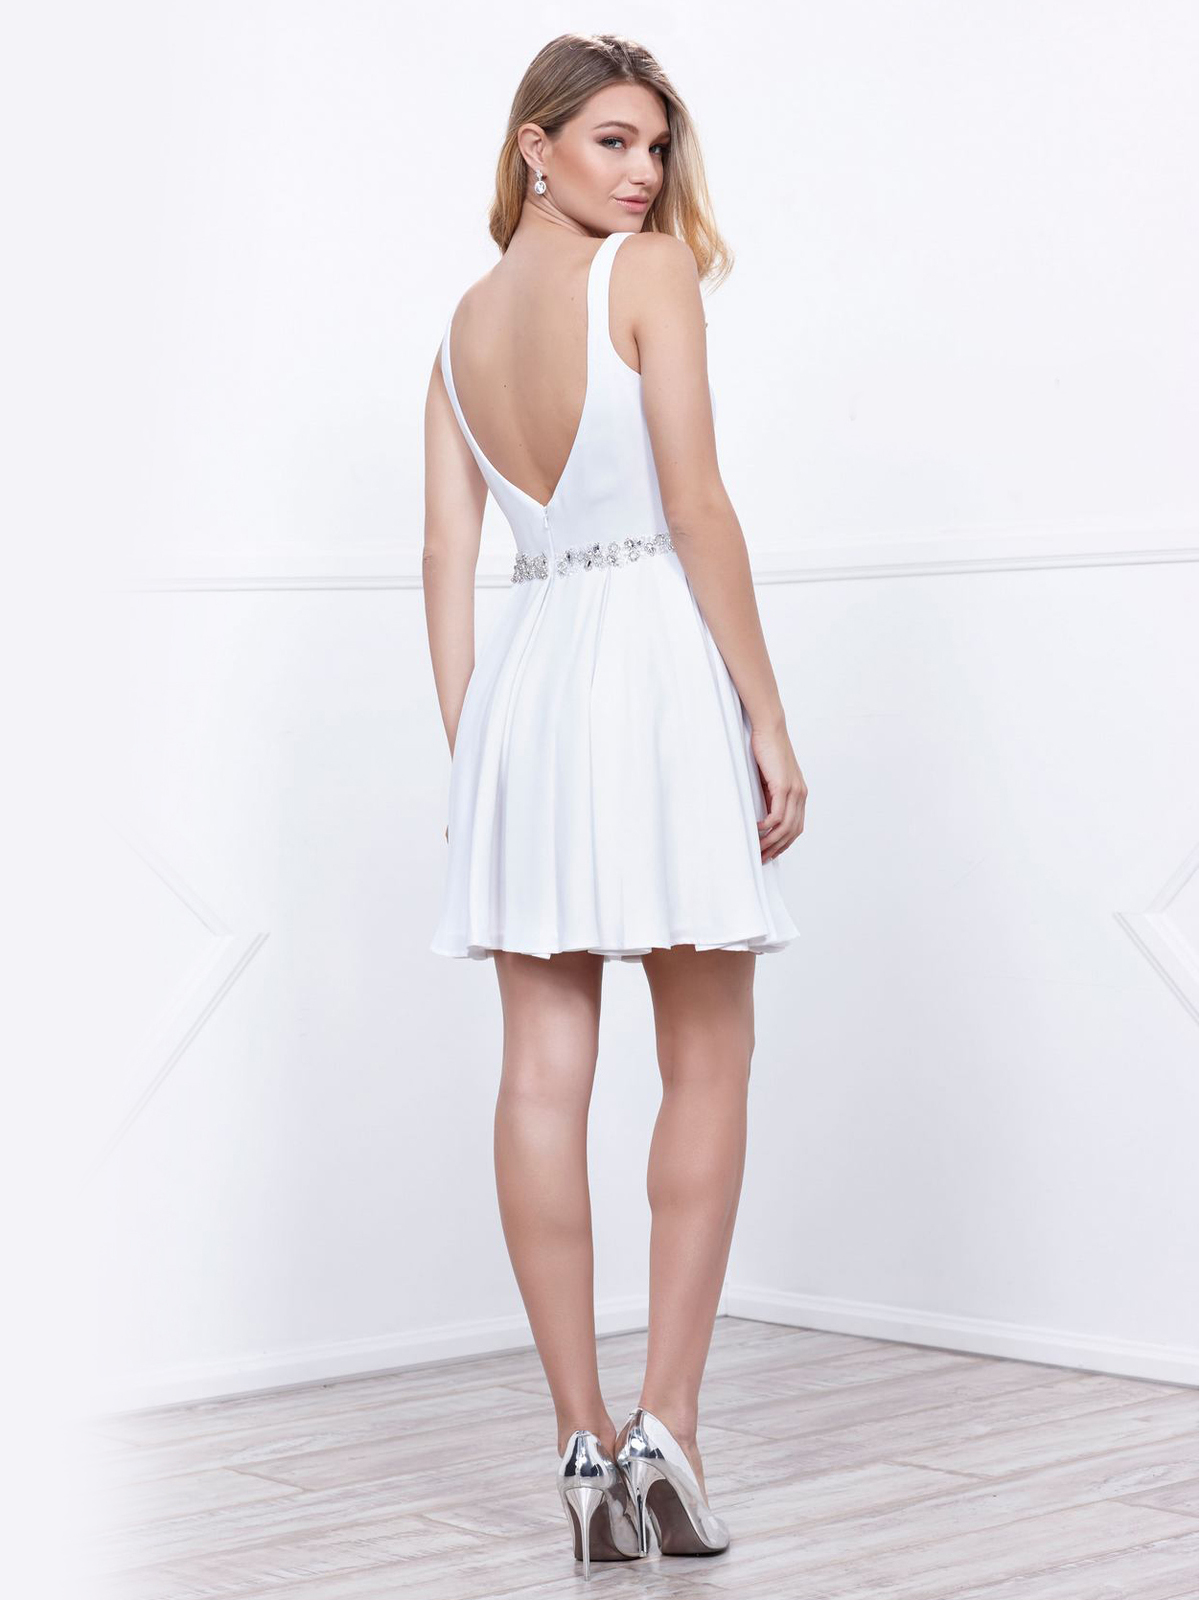 Sleeveless Fit and Flare Cocktail Dress | Sung Boutique L.A.